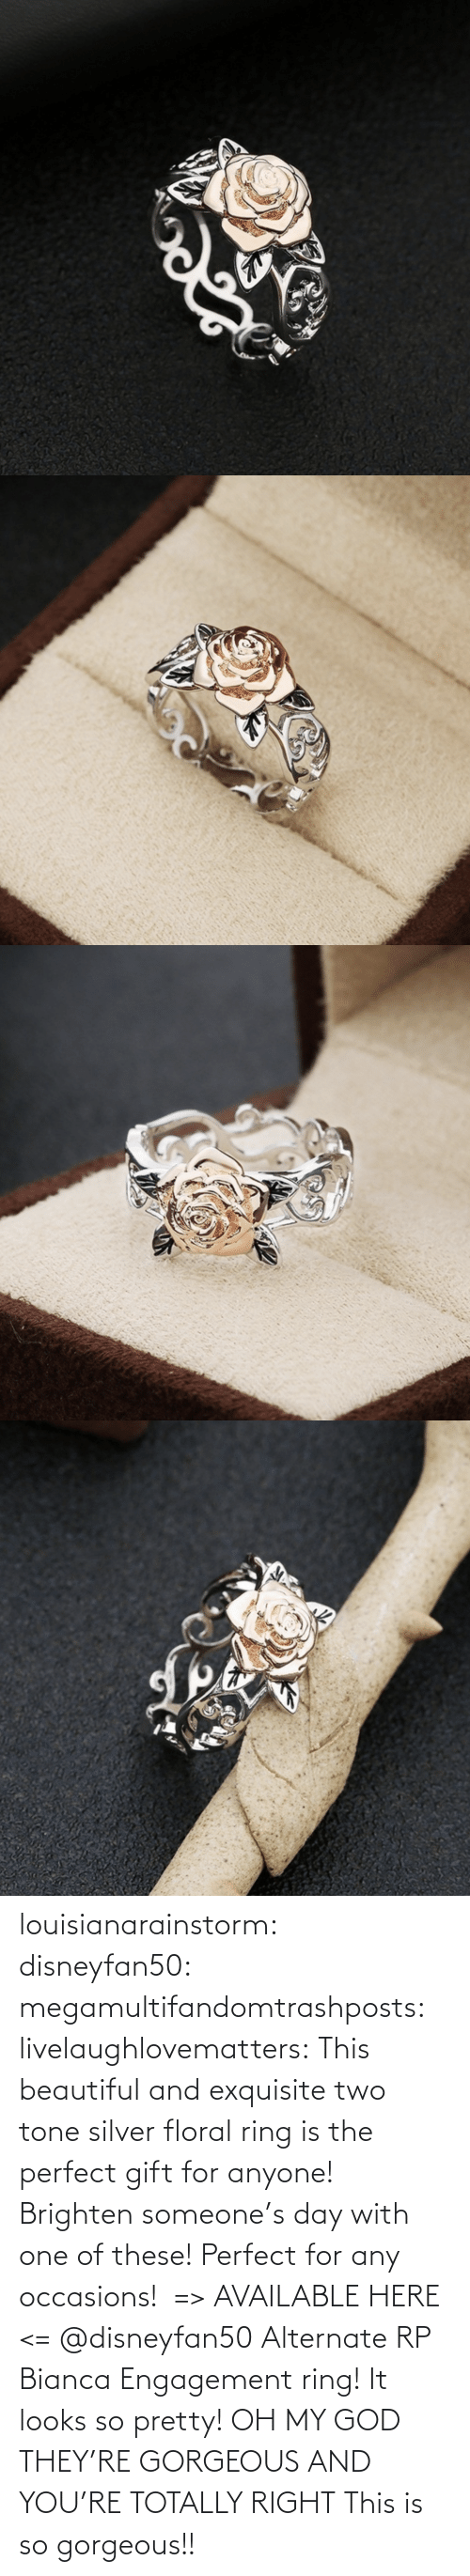 ring: louisianarainstorm: disneyfan50:  megamultifandomtrashposts:  livelaughlovematters:  This beautiful and exquisite two tone silver floral ring is the perfect gift for anyone! Brighten someone's day with one of these! Perfect for any occasions!  => AVAILABLE HERE <=    @disneyfan50 Alternate RP Bianca Engagement ring! It looks so pretty!  OH MY GOD THEY'RE GORGEOUS AND YOU'RE TOTALLY RIGHT    This is so gorgeous!!